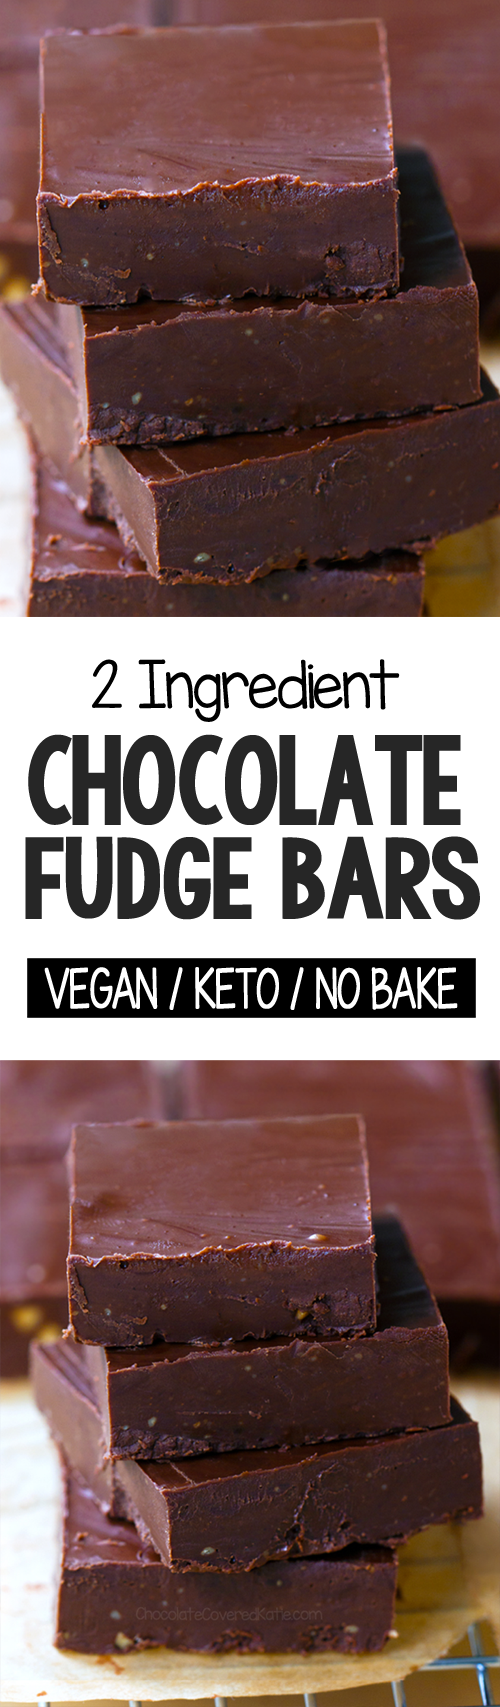 2 Ingredient Keto Chocolate Fudge Bars